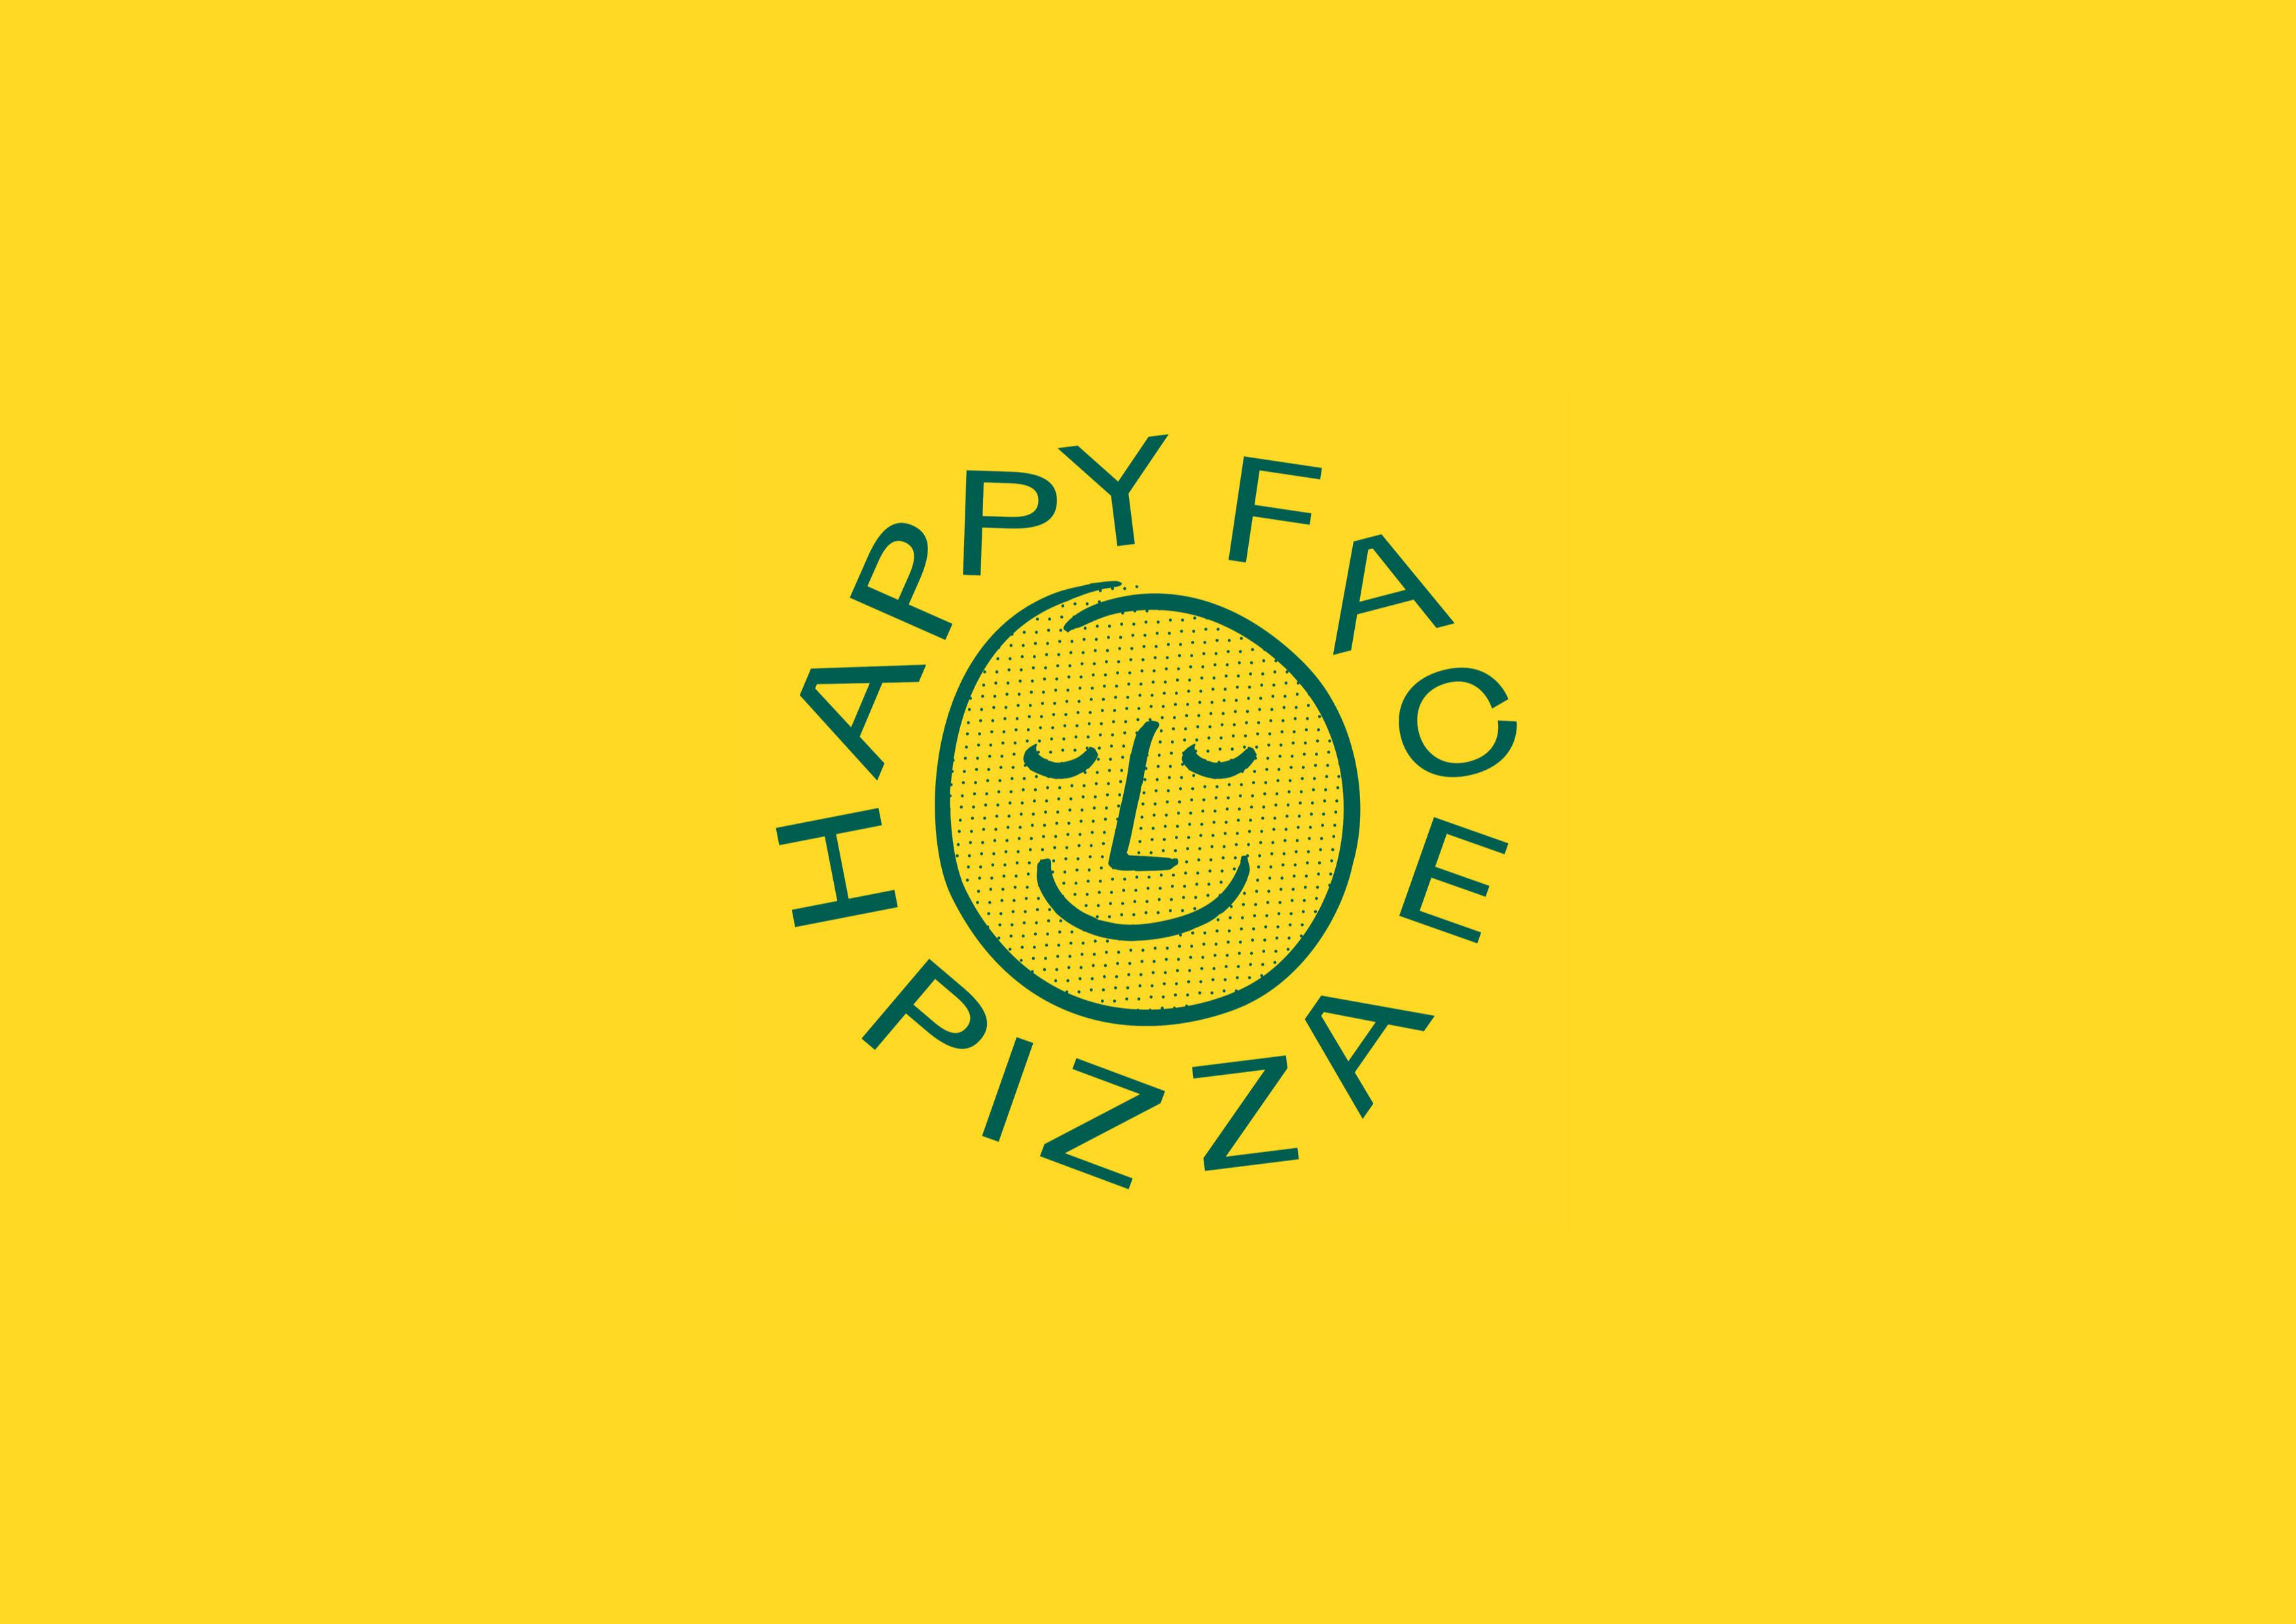 Pentagram's super smiley identity for Happy Face pizzeria